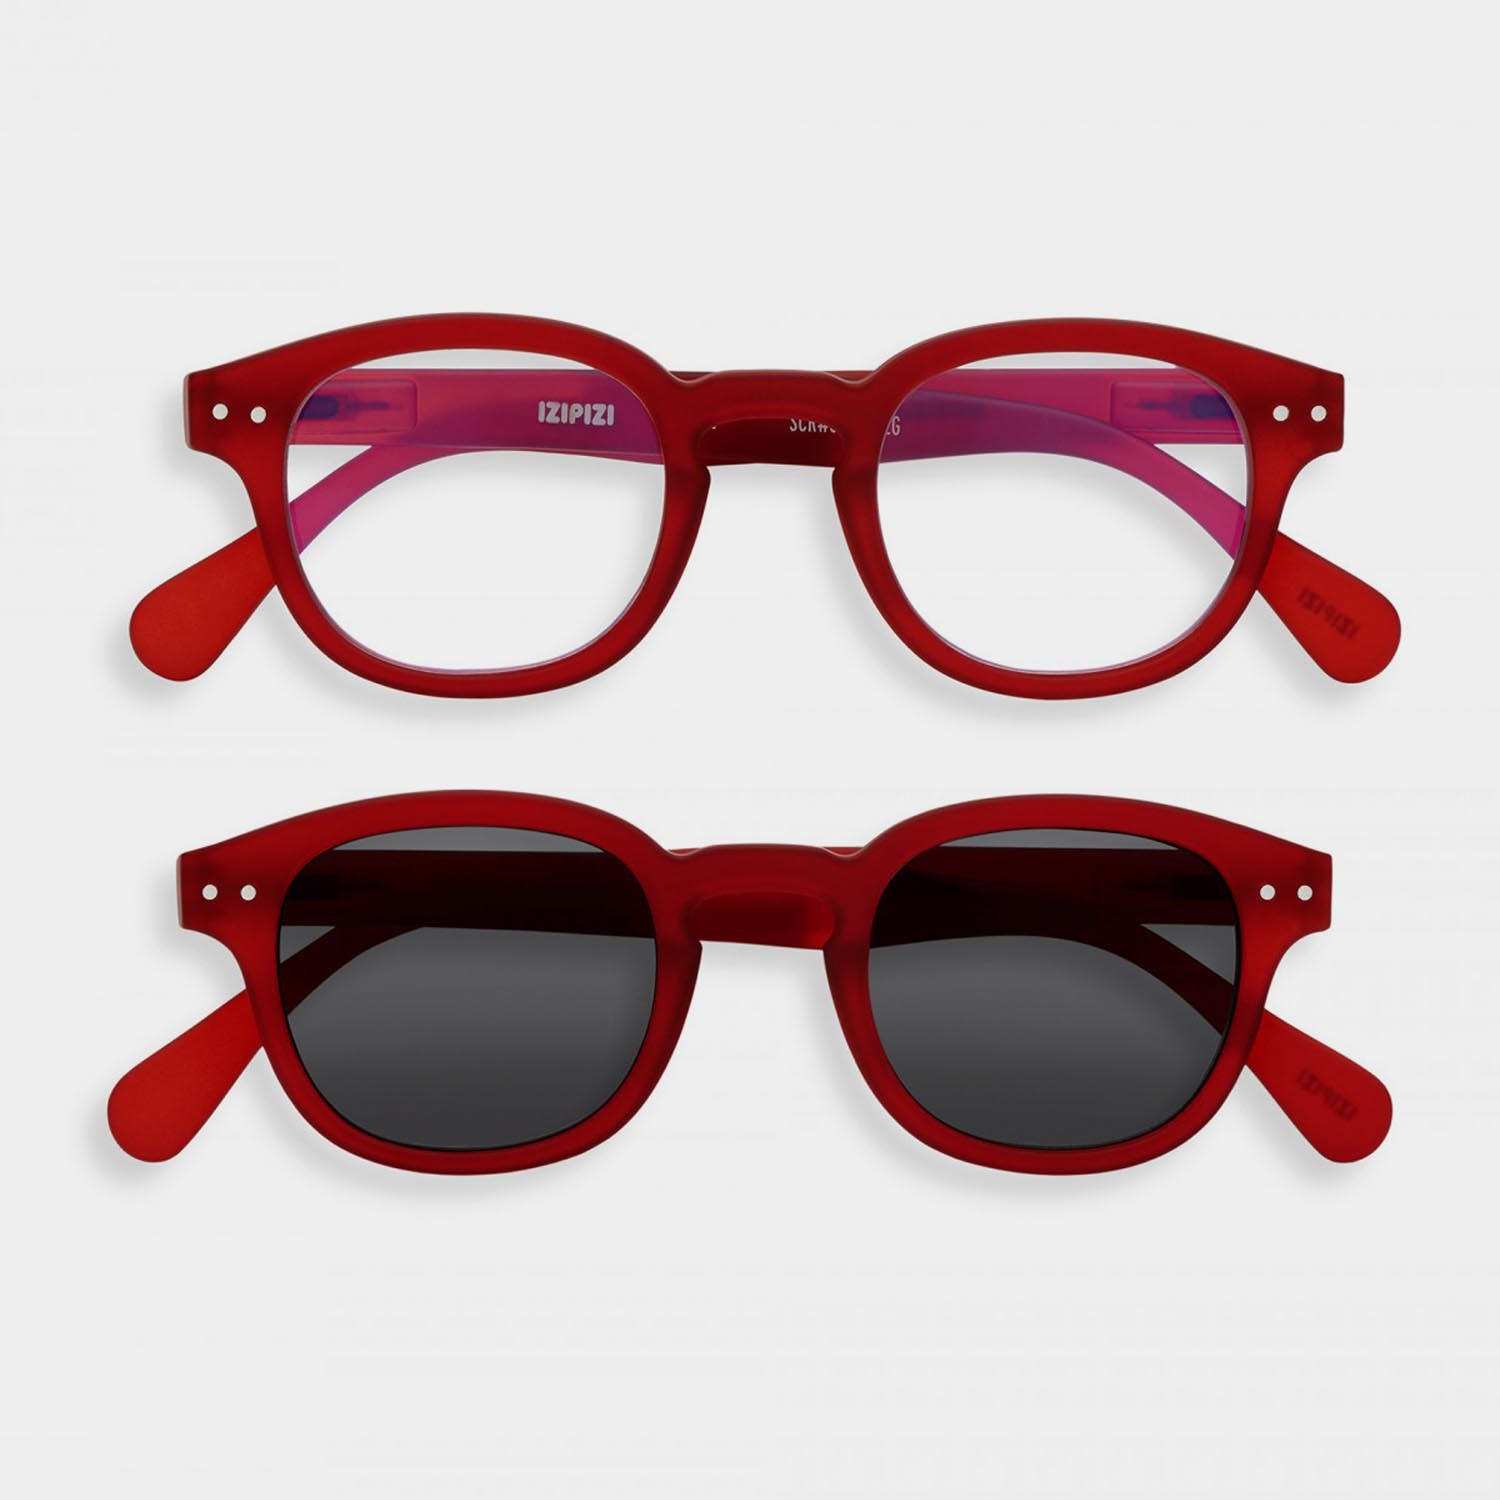 SCREEN and SUN Glasses Duo #C, Red